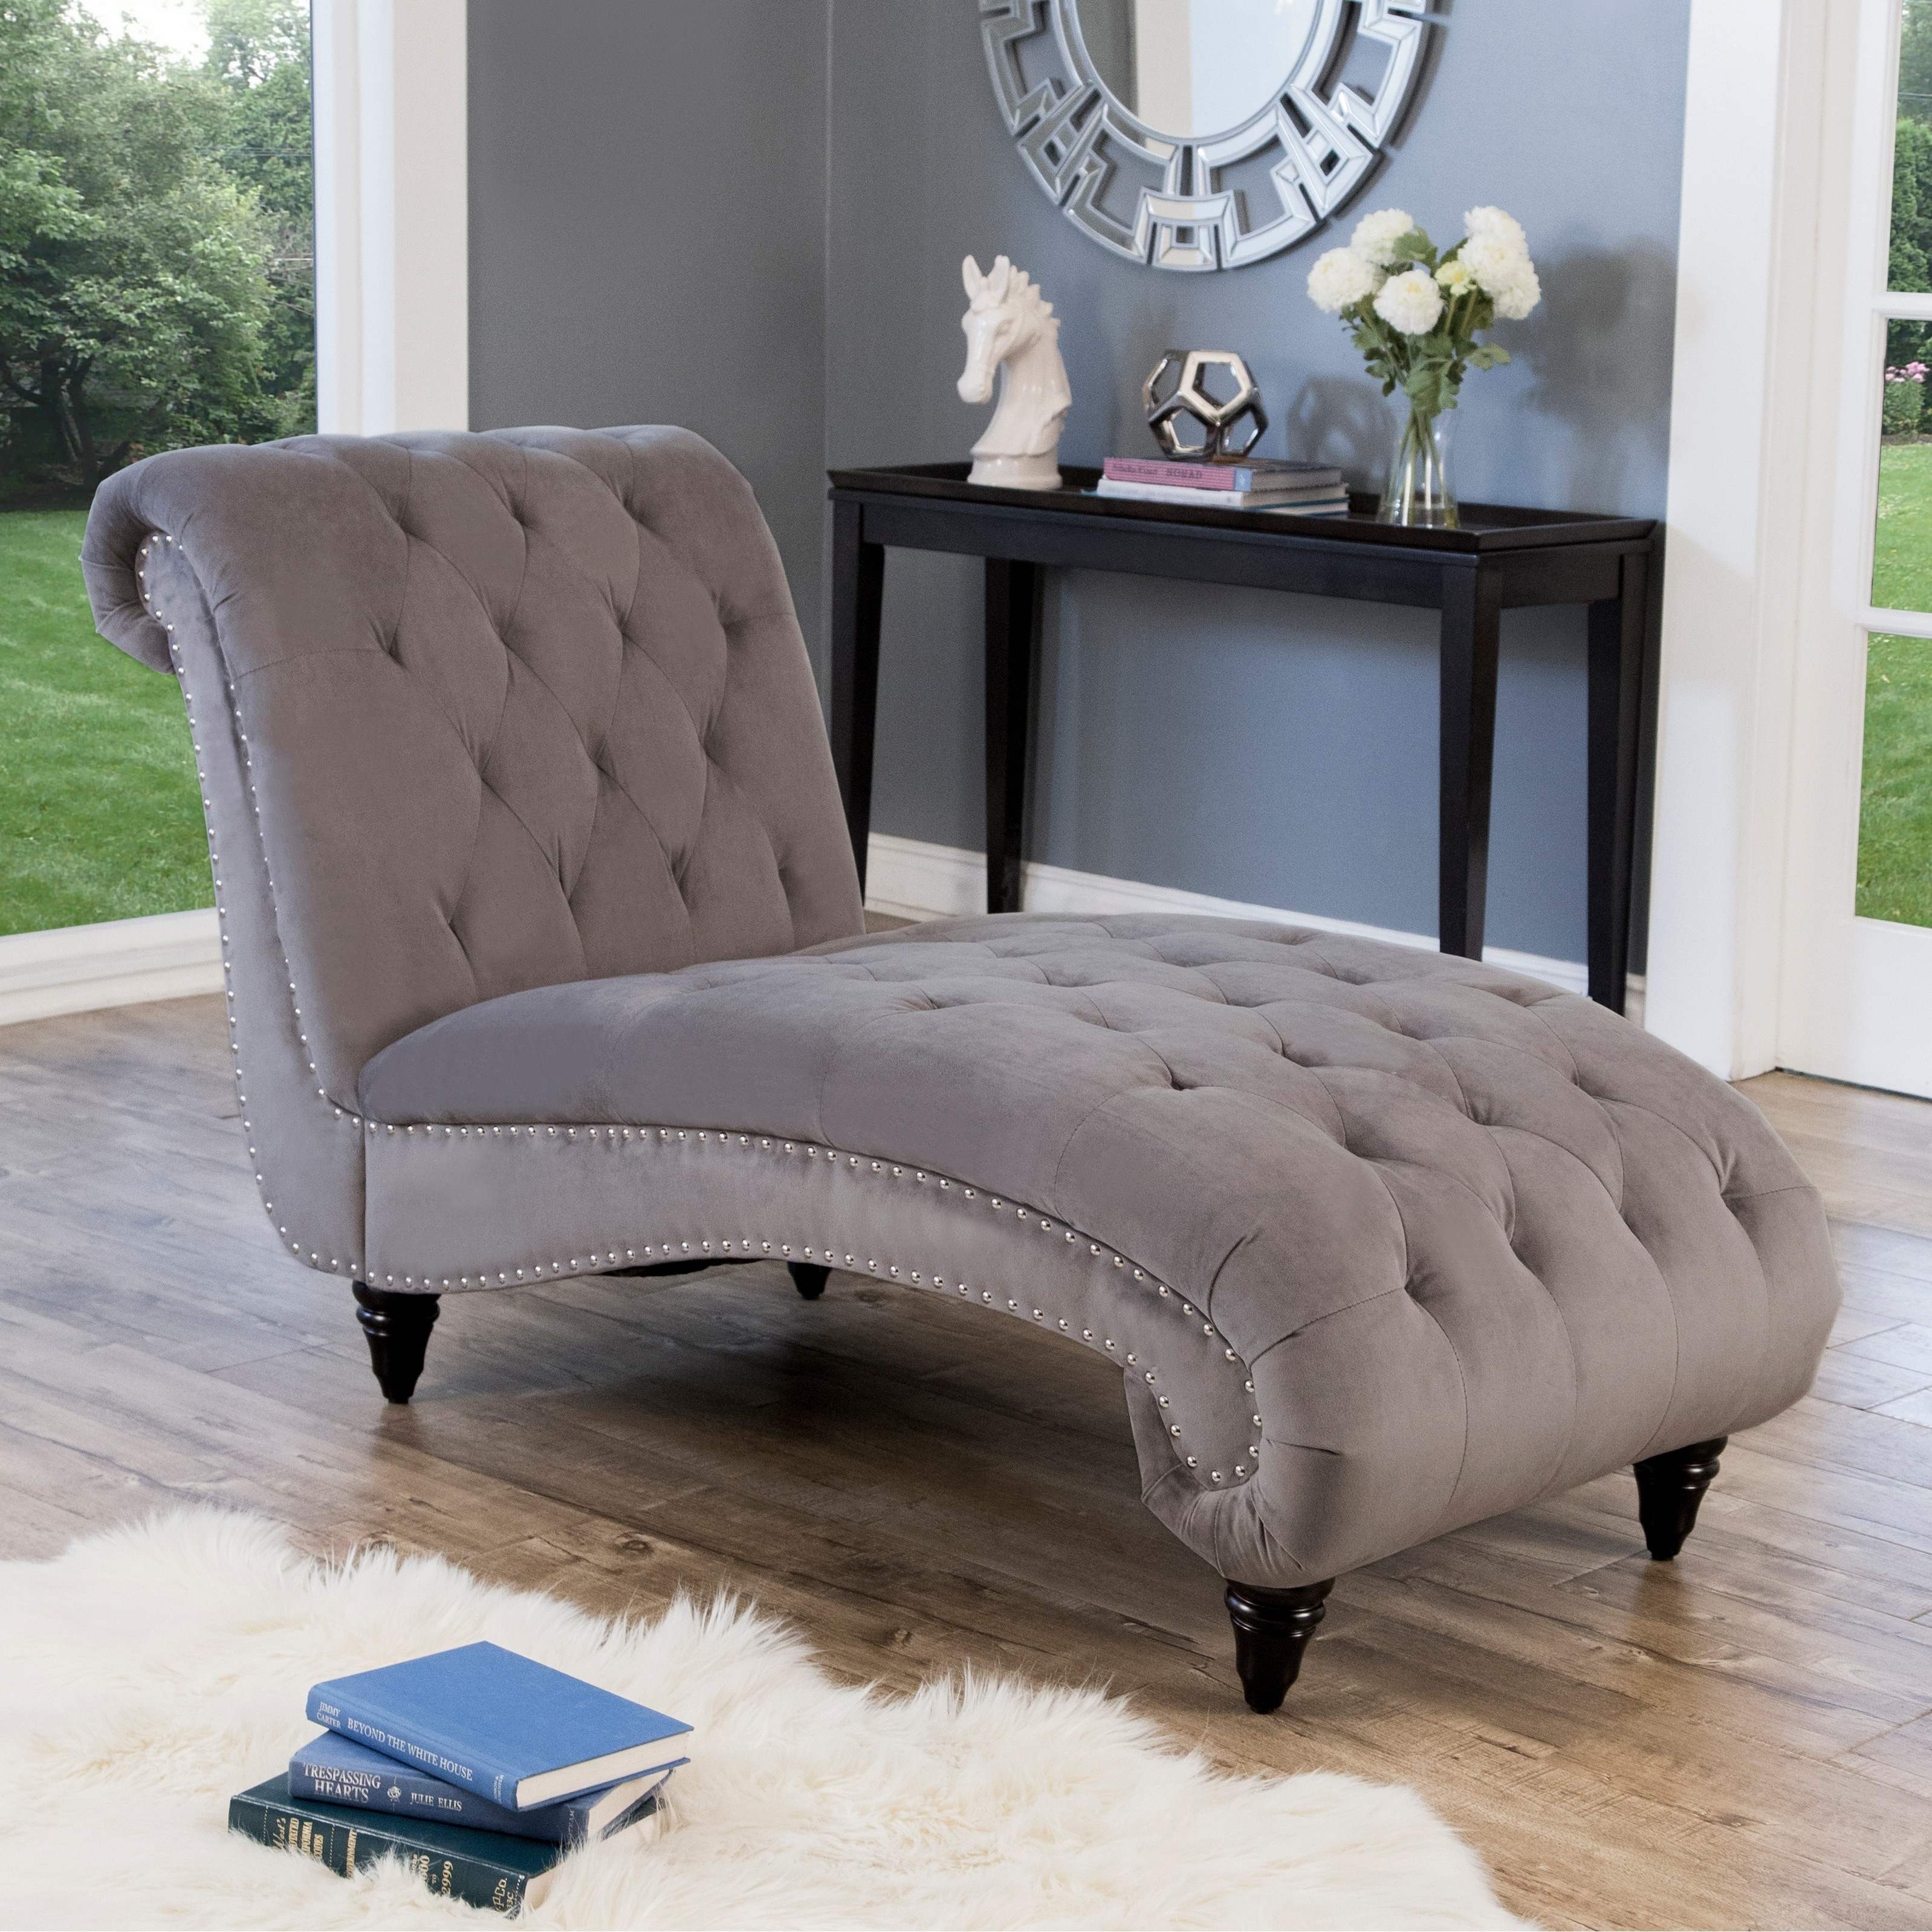 Cool Chaise Lounges Living Room Chairs Shop Online At Overstock Beatyapartments Chair Design Images Beatyapartmentscom